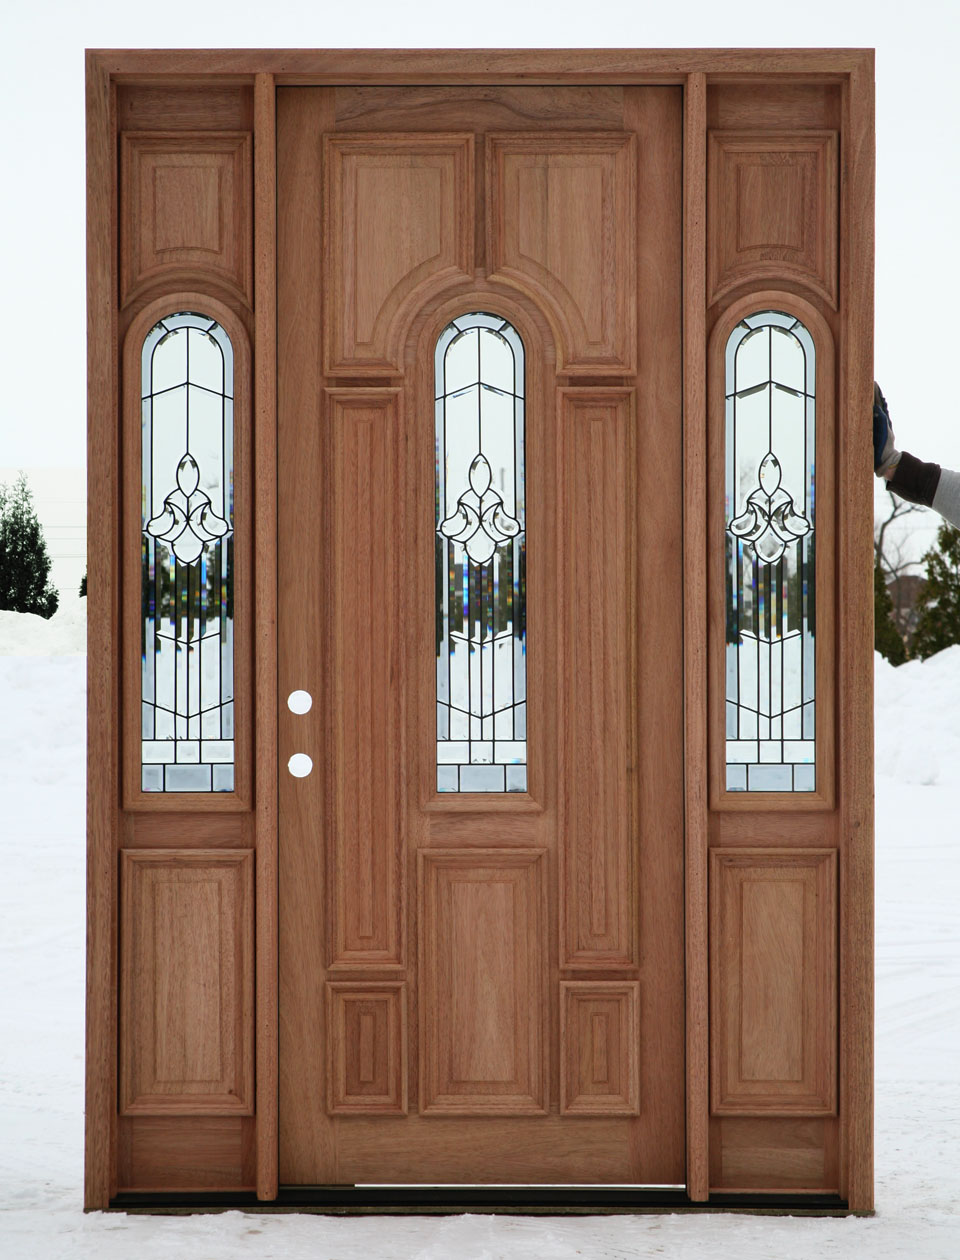 exterior doors prehung with sidelights. Black Bedroom Furniture Sets. Home Design Ideas